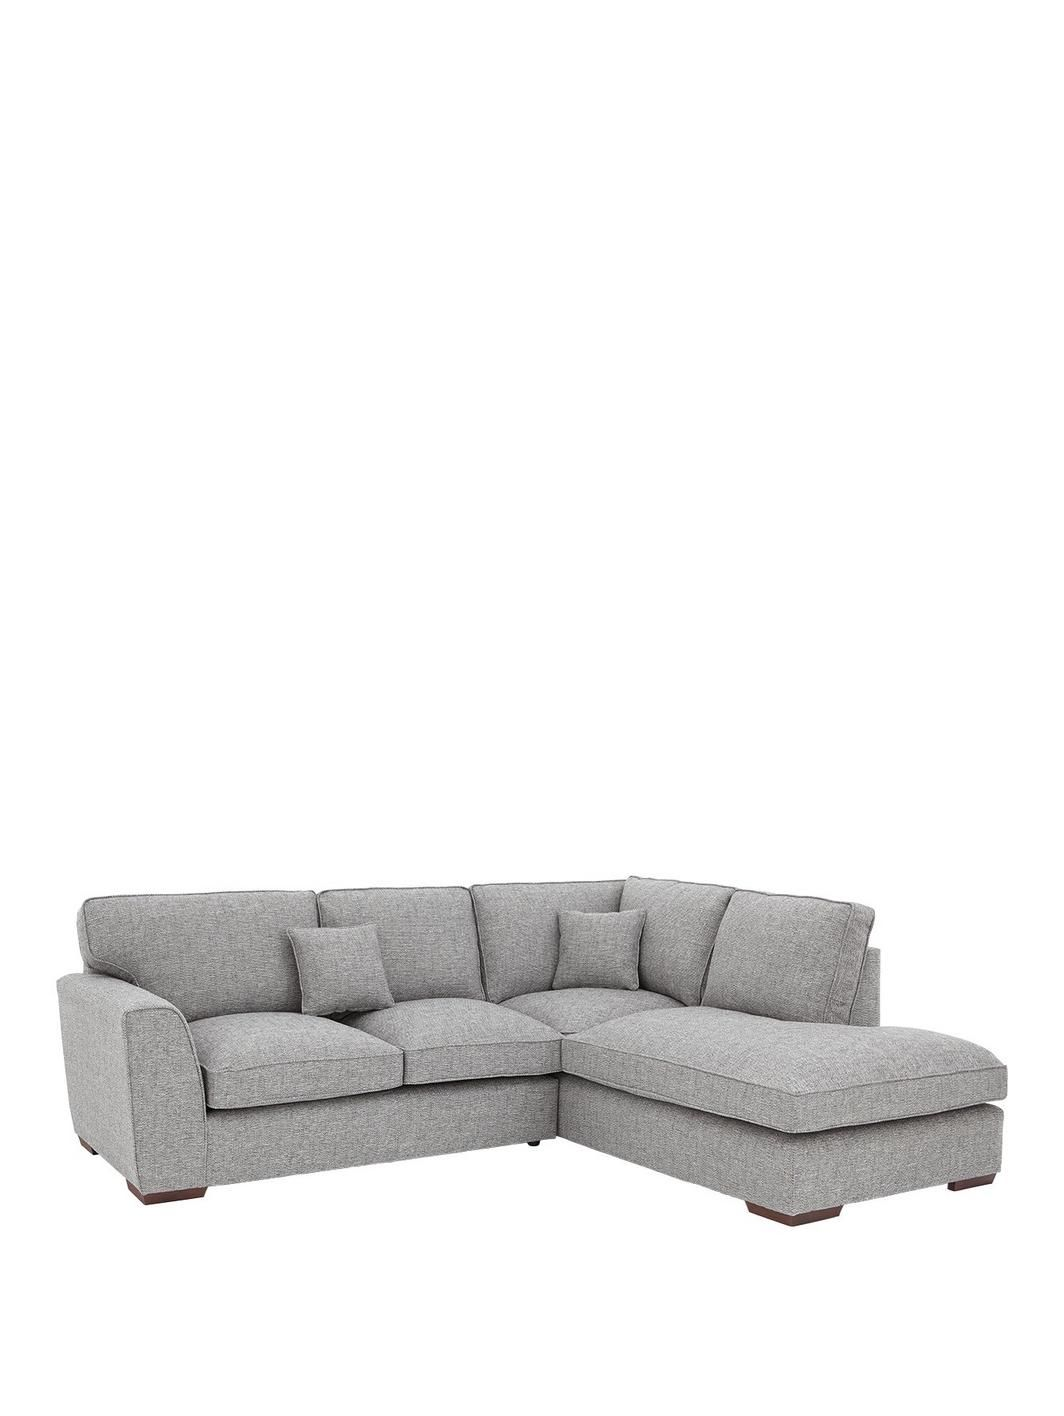 Delicieux Rio Fabric Left Hand Standard Back Corner Chaise Sofa | Home Decor Ideas |  Pinterest | Chaise Sofa, Corner And Fabrics